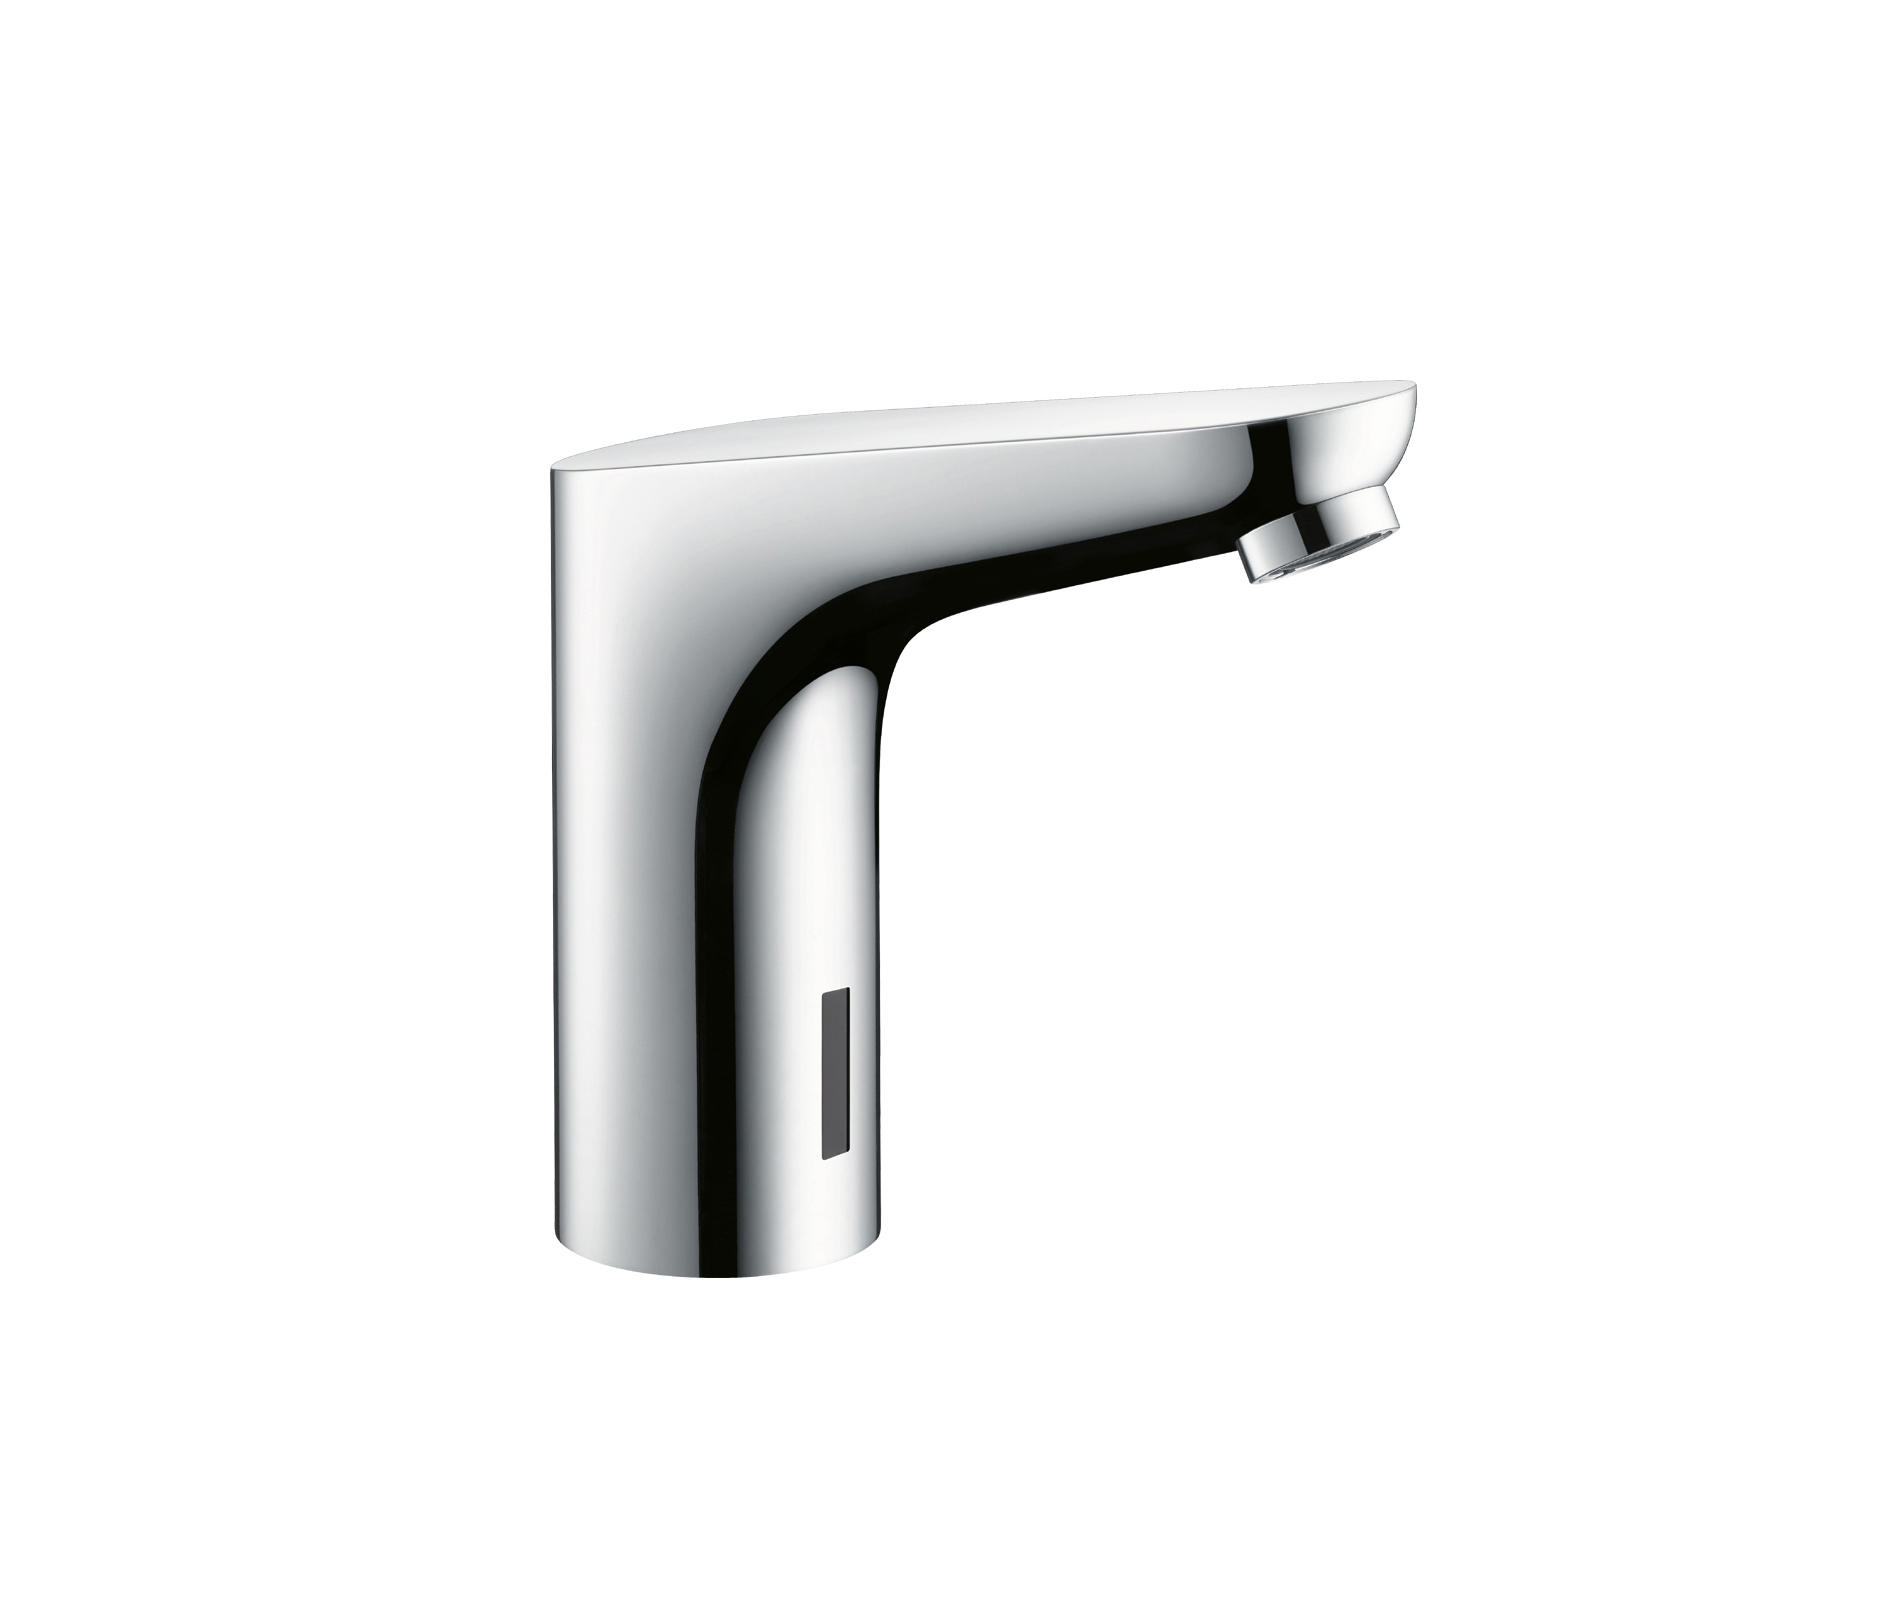 hansgrohe focus mitigeur lavabo lectronique robinetterie pour lavabo de hansgrohe architonic. Black Bedroom Furniture Sets. Home Design Ideas